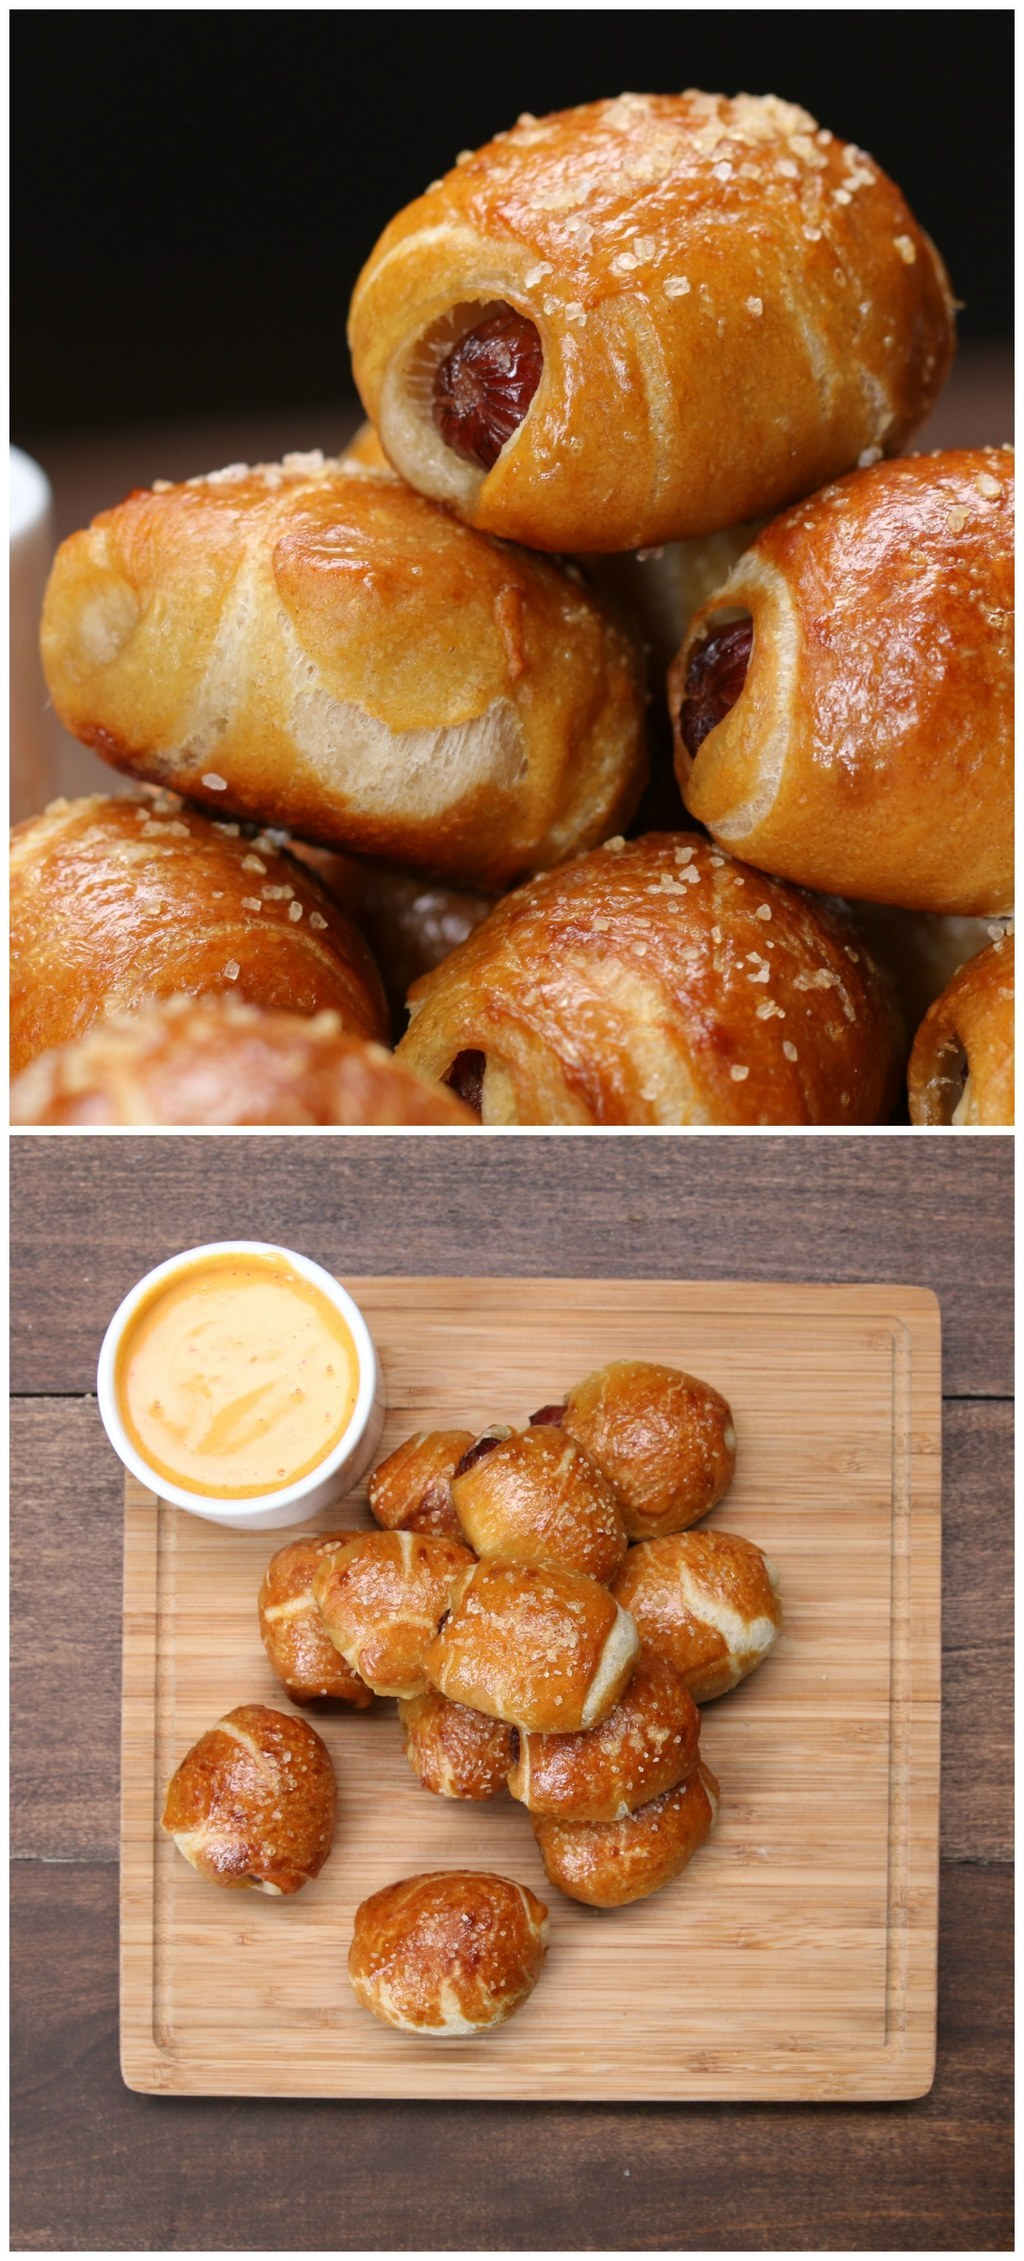 Try These Tasty Treats For Your Super Bowl Party